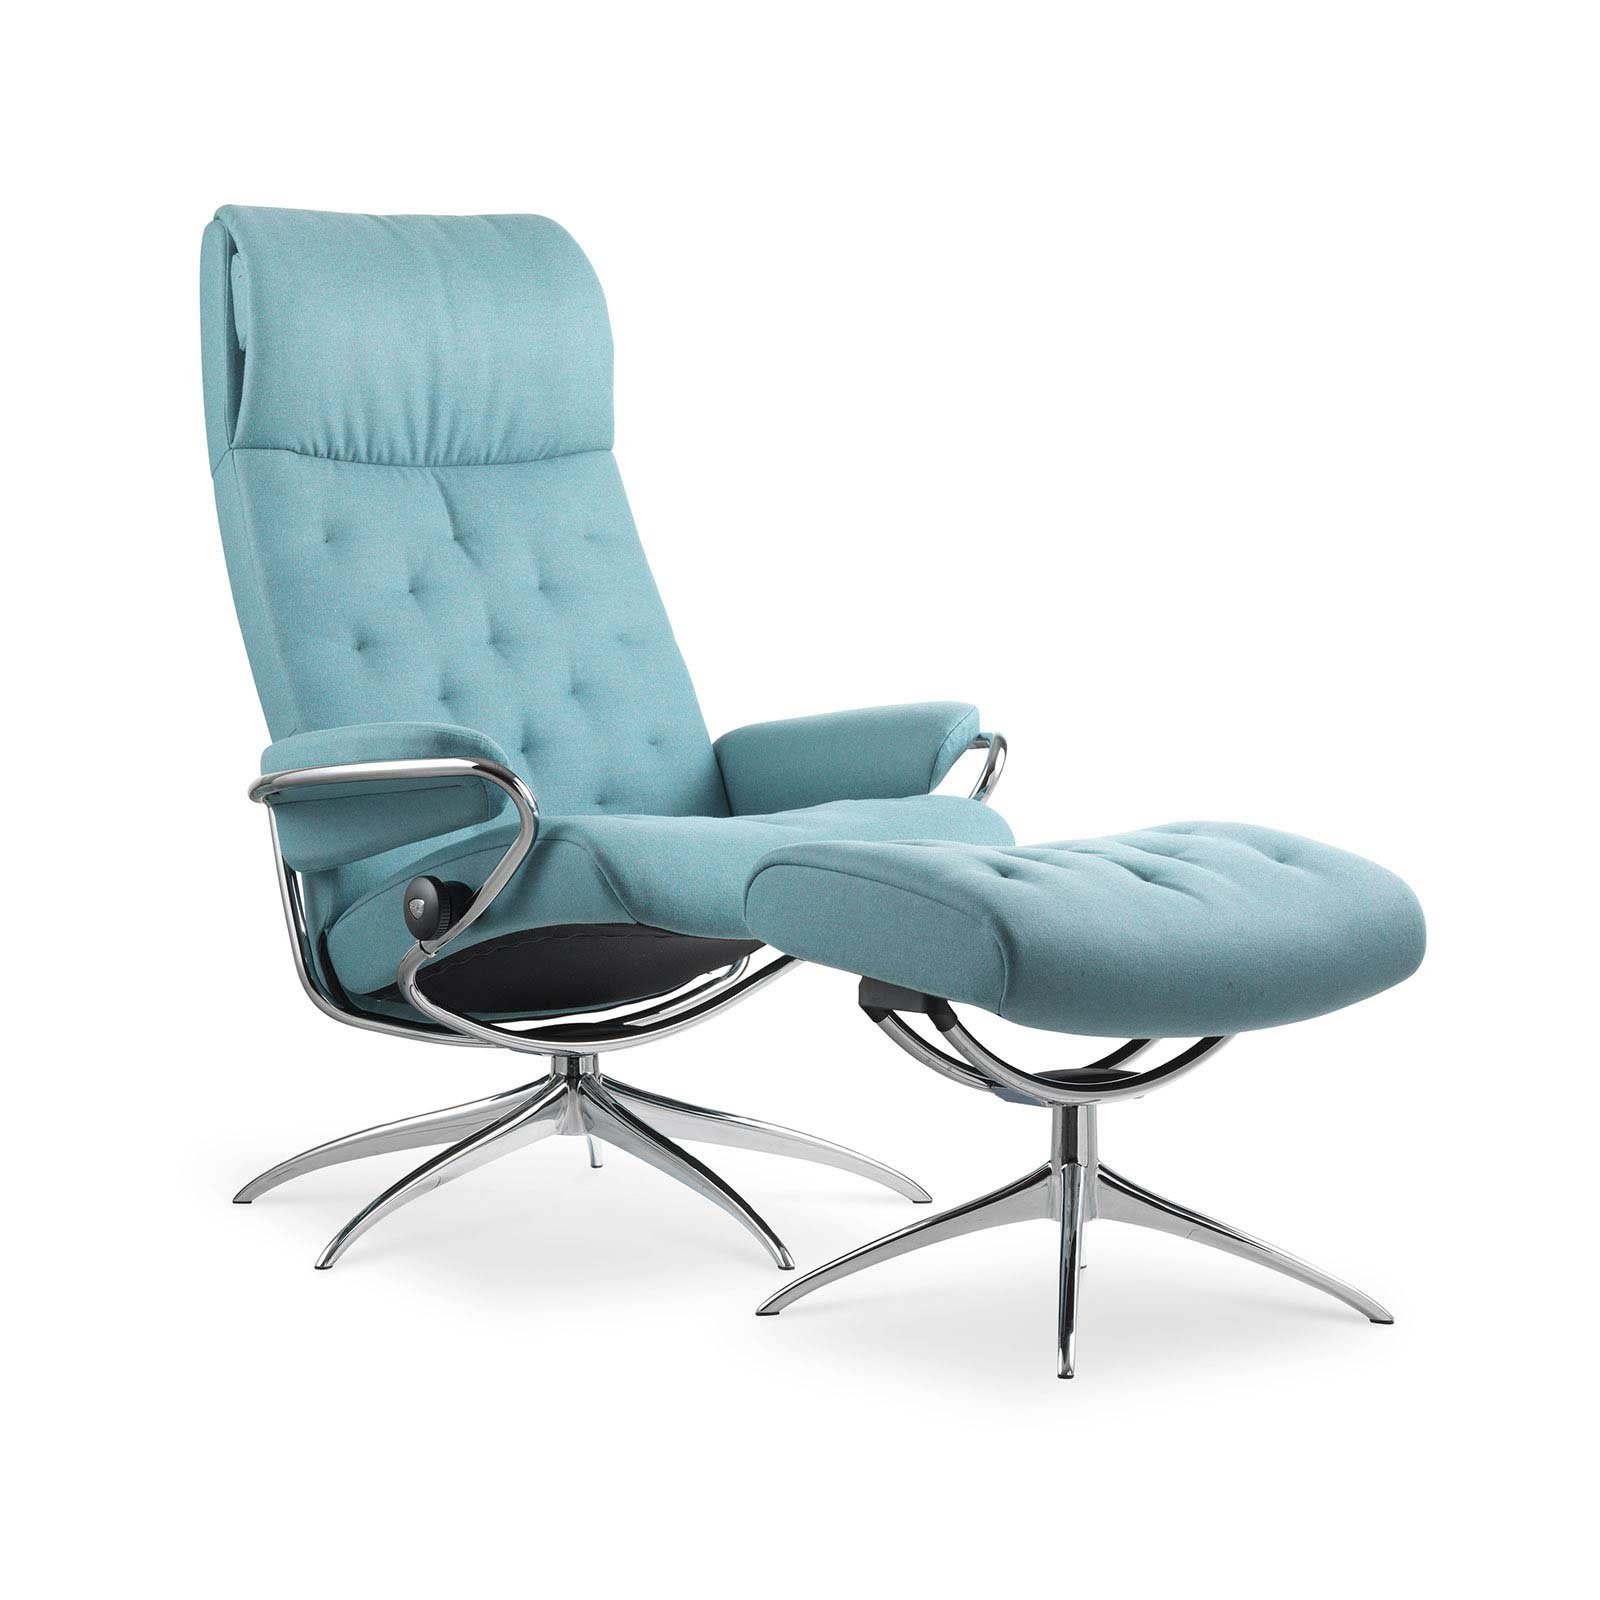 Relaxsessel Stoff Stressless Sessel Metro Aqua High Back Stoff Calido Aqua Mit Hocker